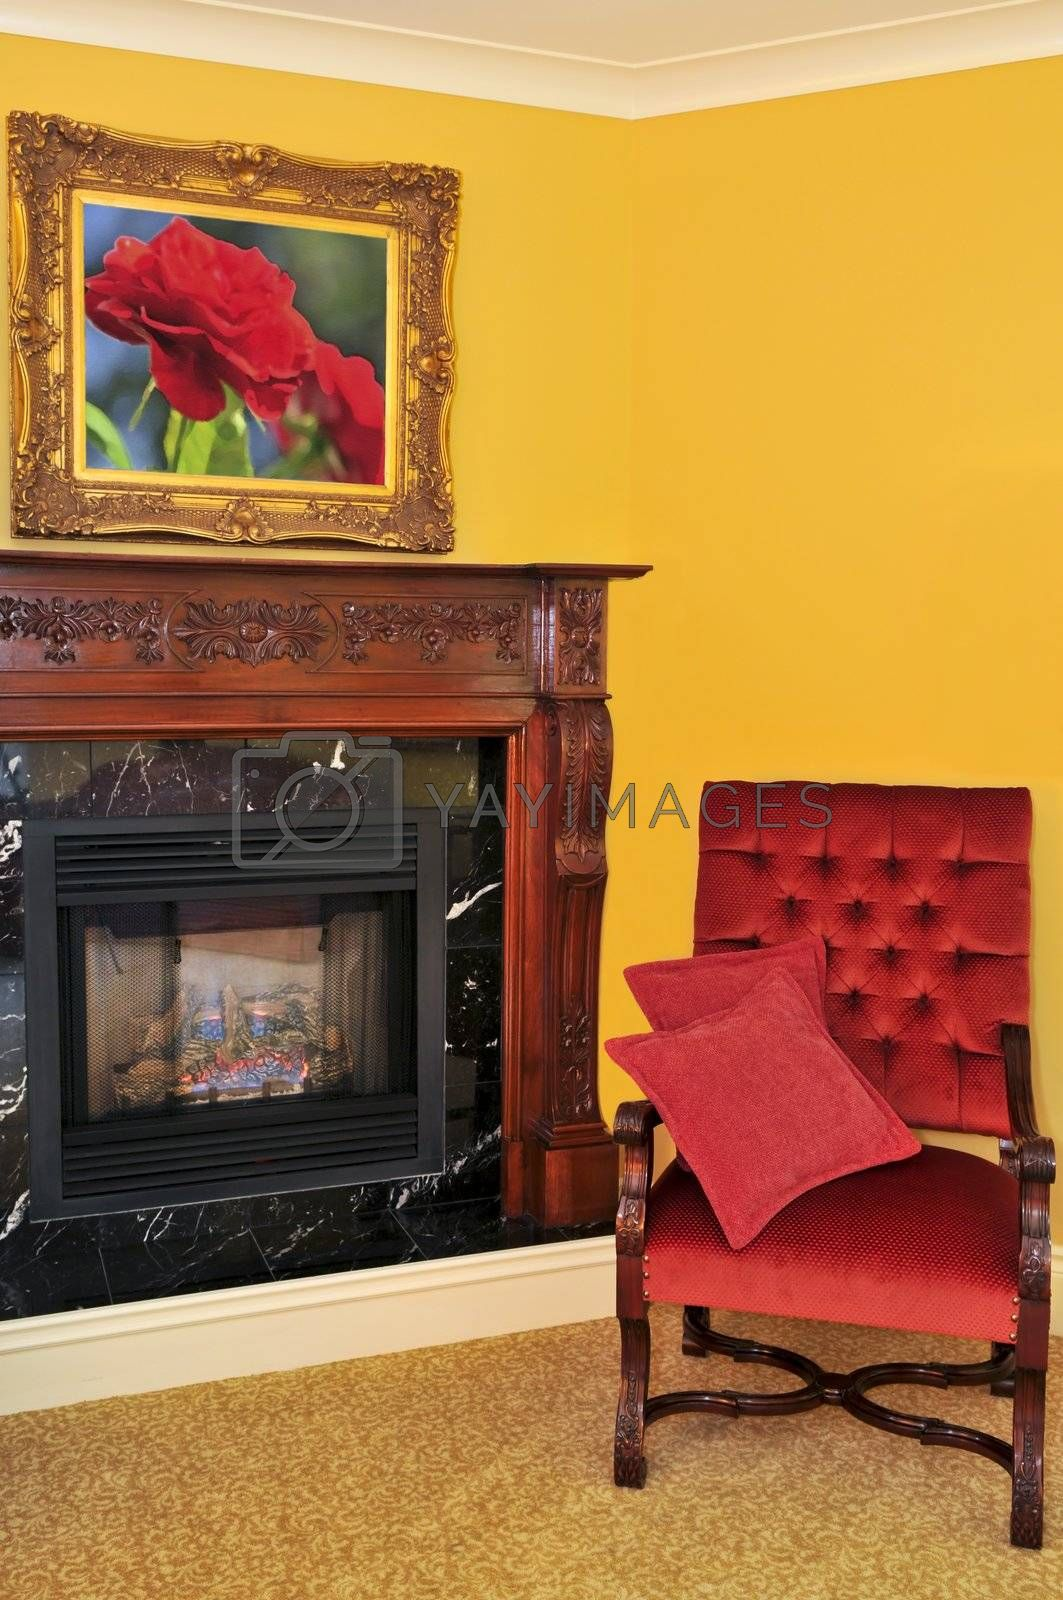 Fireplace and red chair by elenathewise